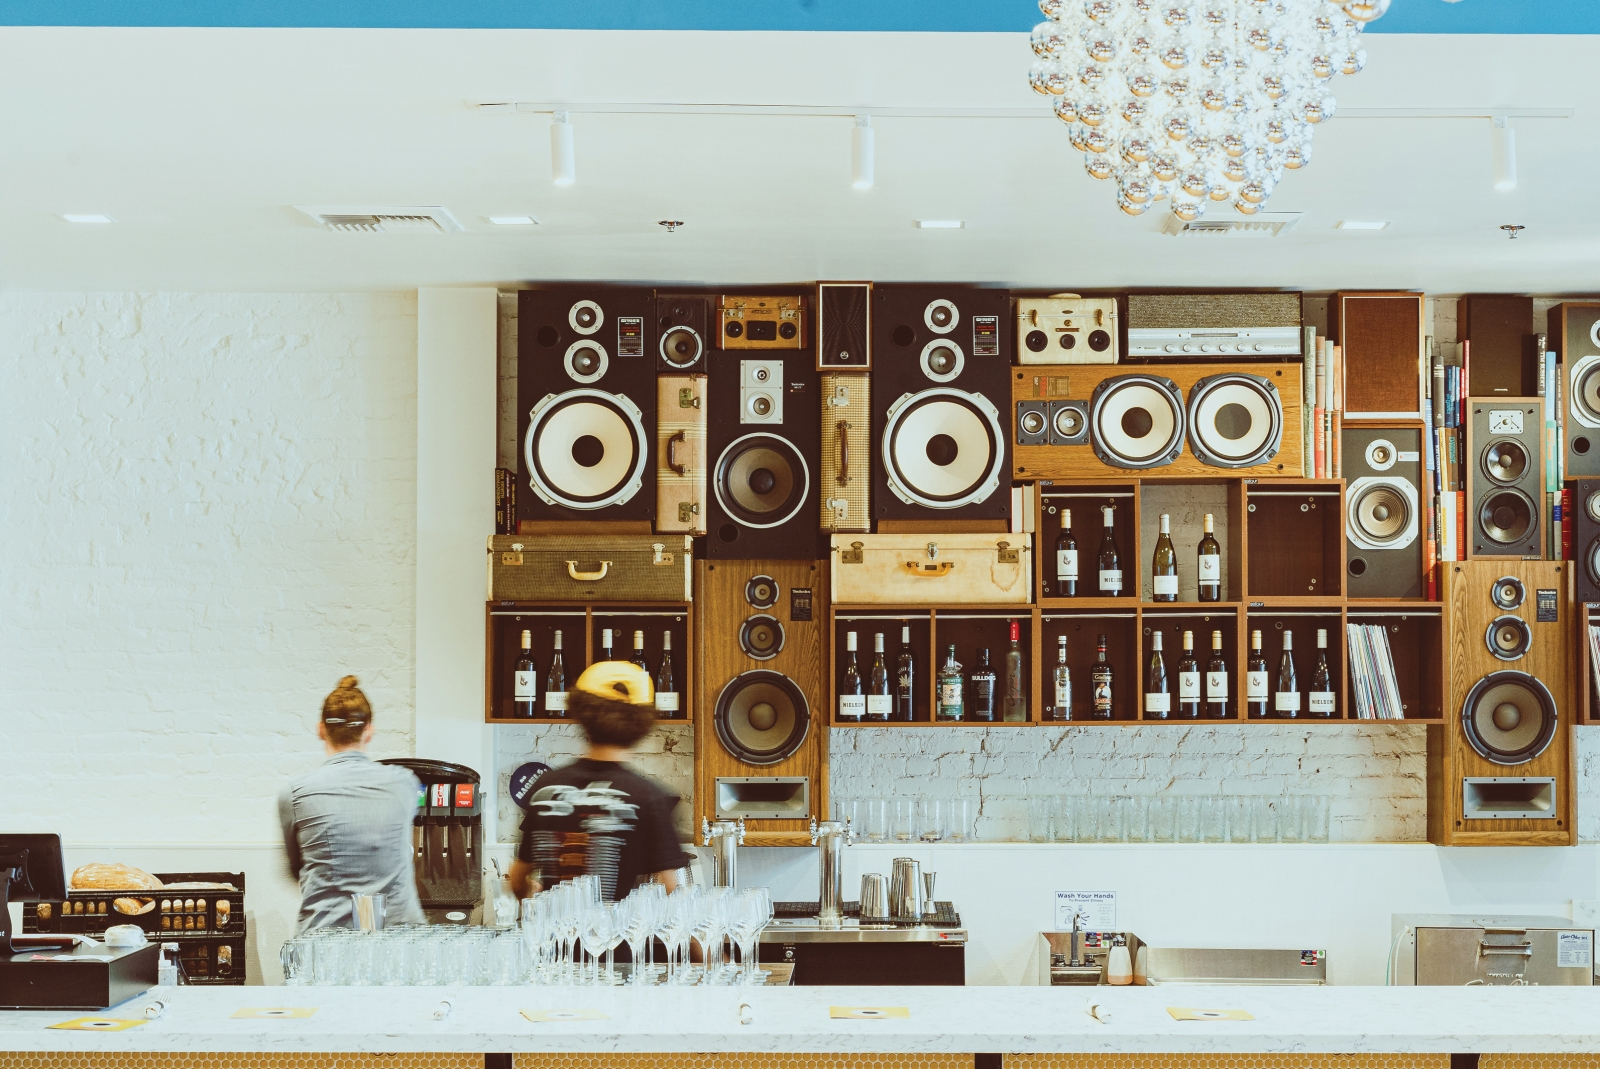 A display of vintage speakers serves as a nod to the downtown space's origins as a Tower Records store.